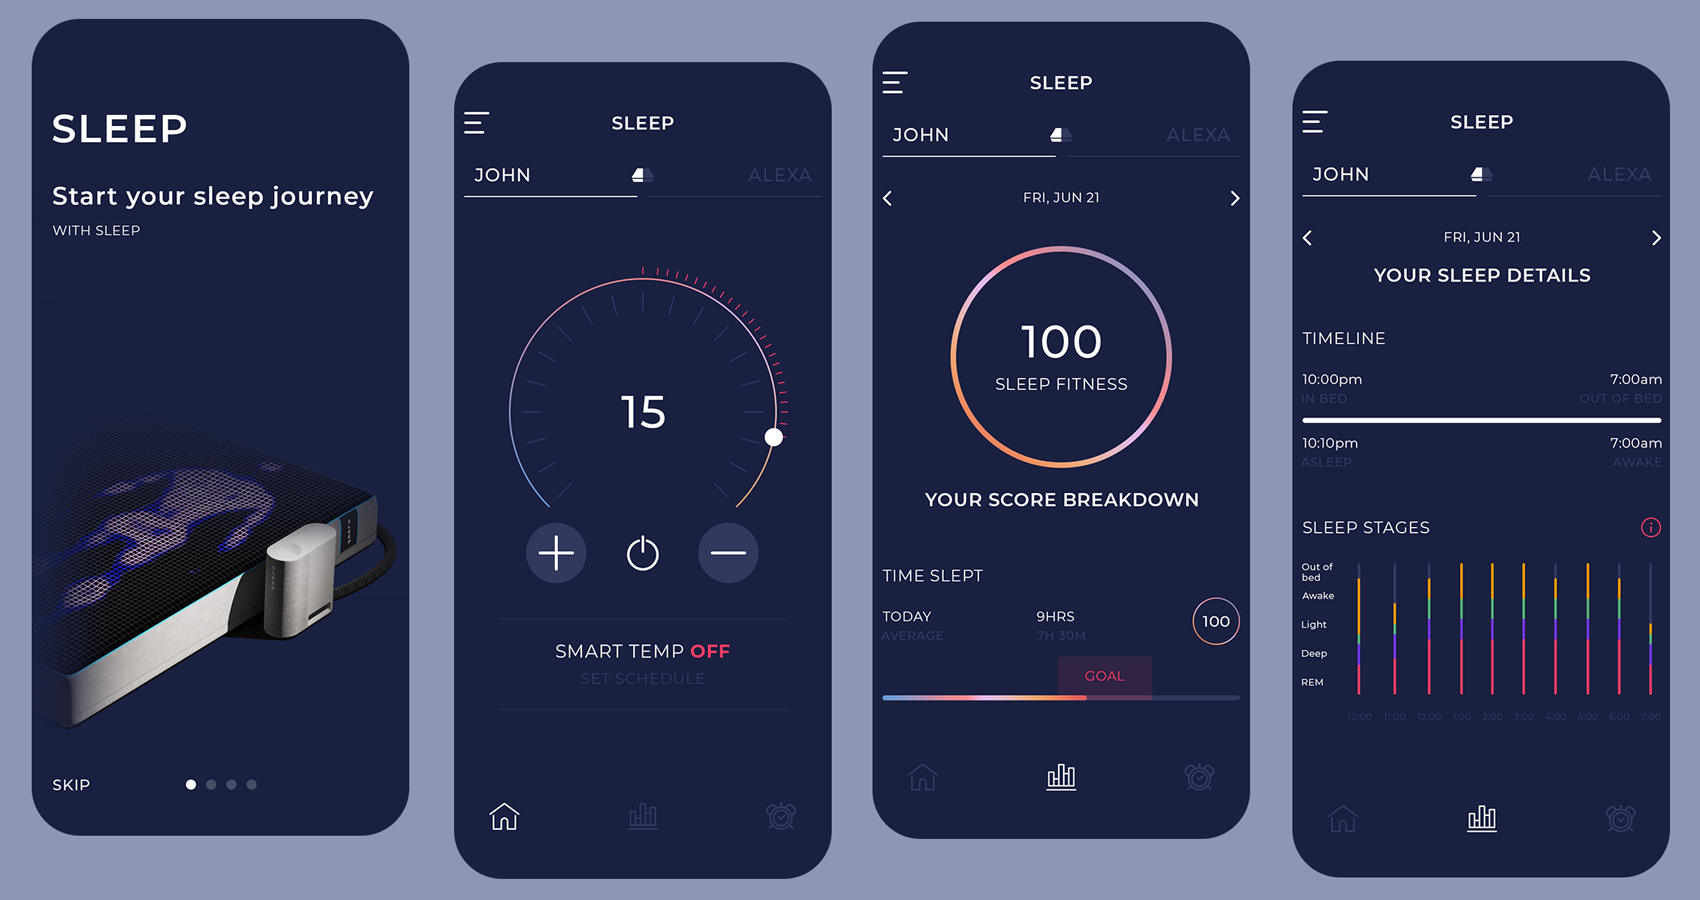 Dark theme mobile apps are trending for mobile UX design